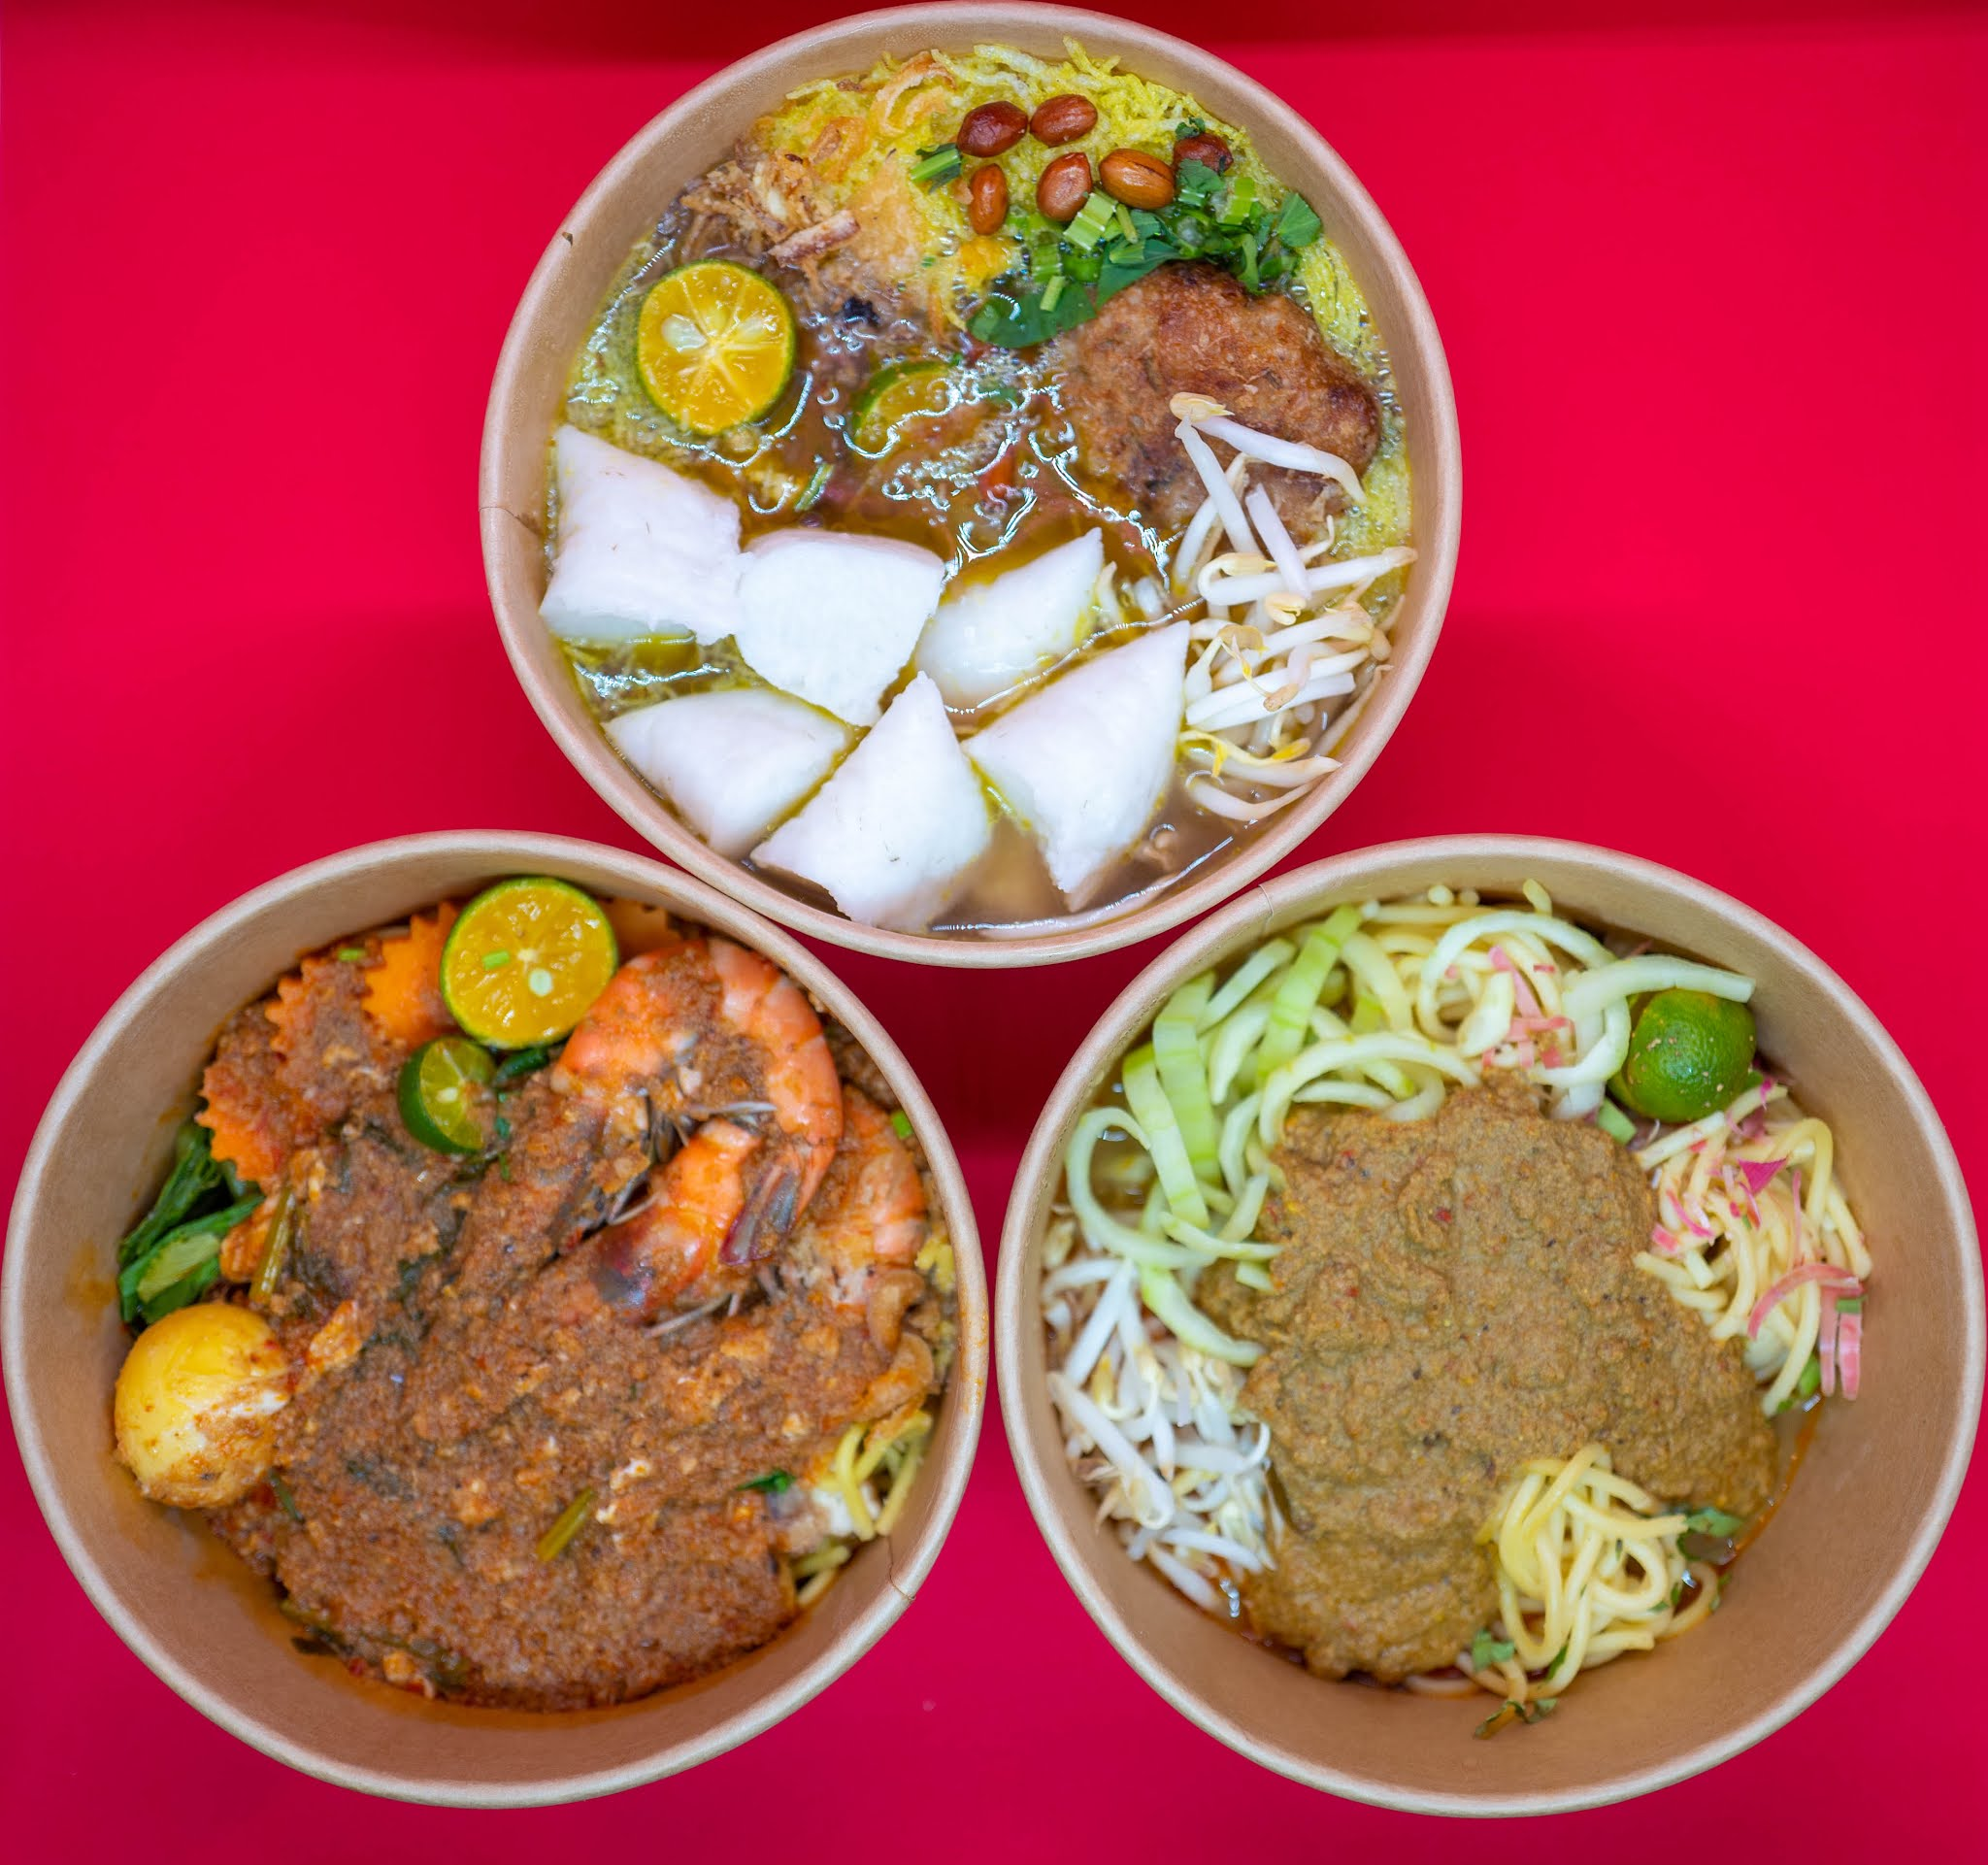 muo.le: delivery for southern malay dishes